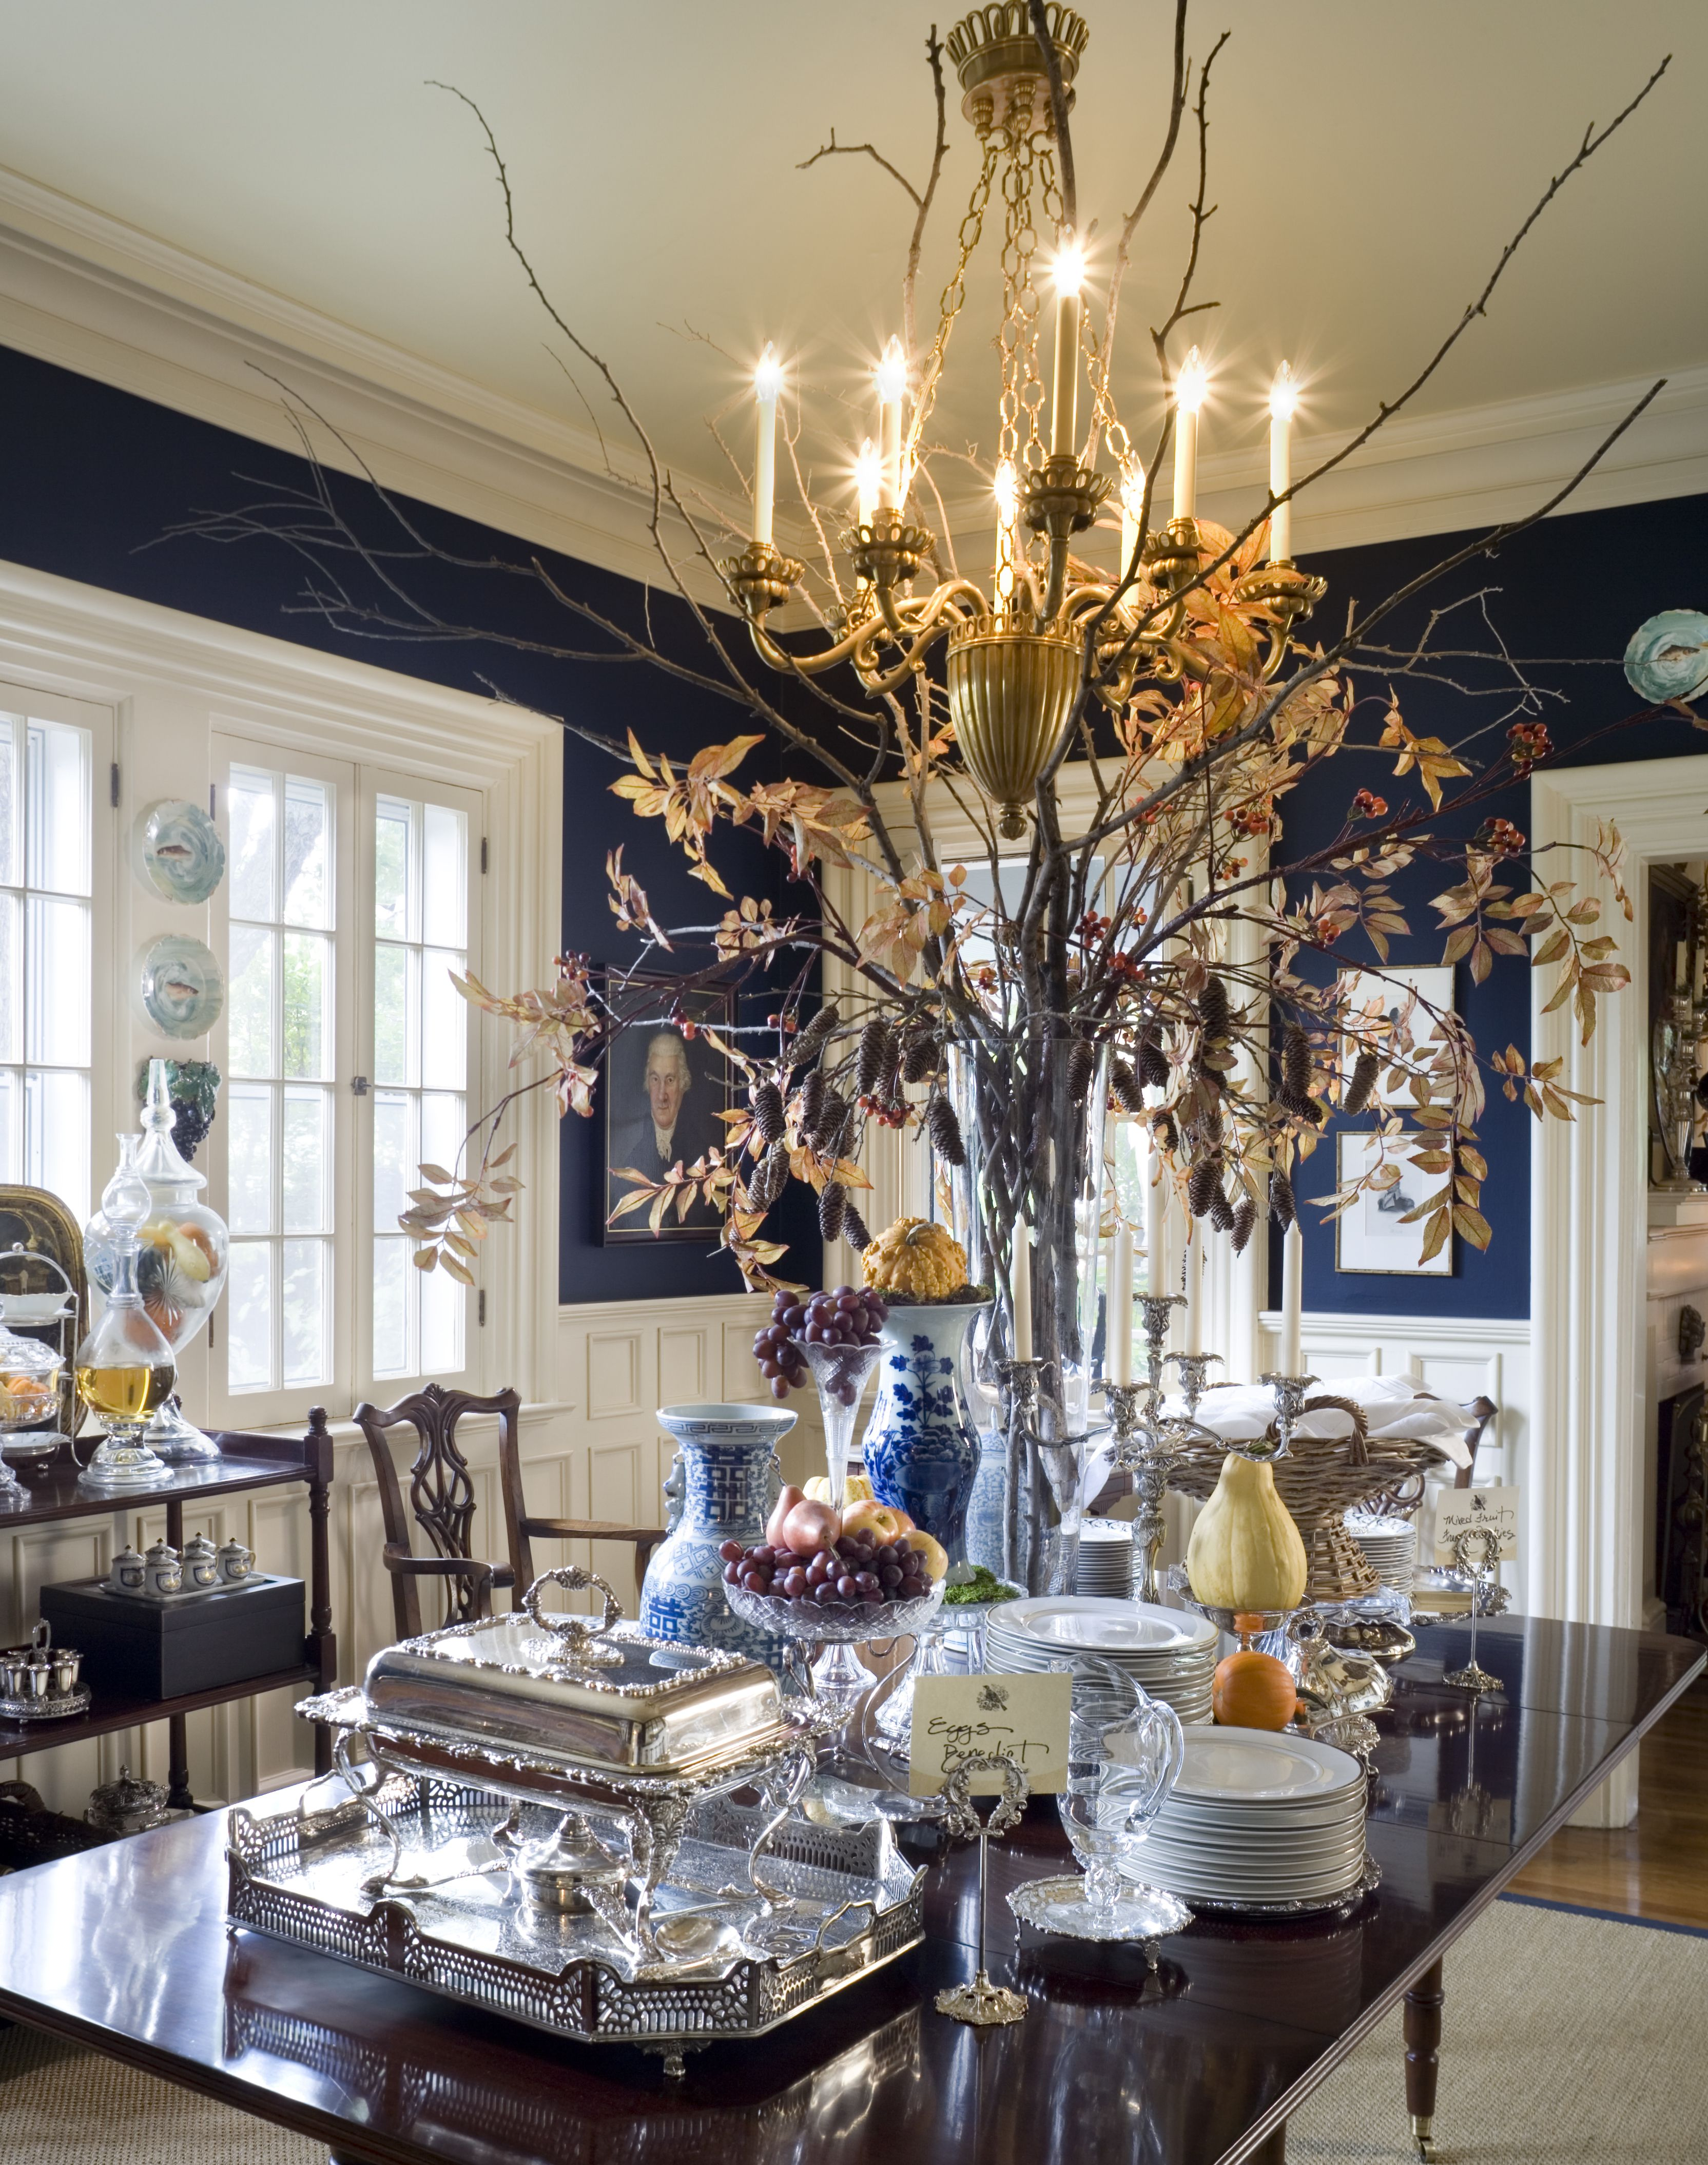 Blue And White Dining Room Ideas Part - 33: Dark Blue Walls And Ornate White Trim. The Centerpiece That Reaches Almost  To The Ceiling Prevents Me From Seeing The Room From A Complete Design ...